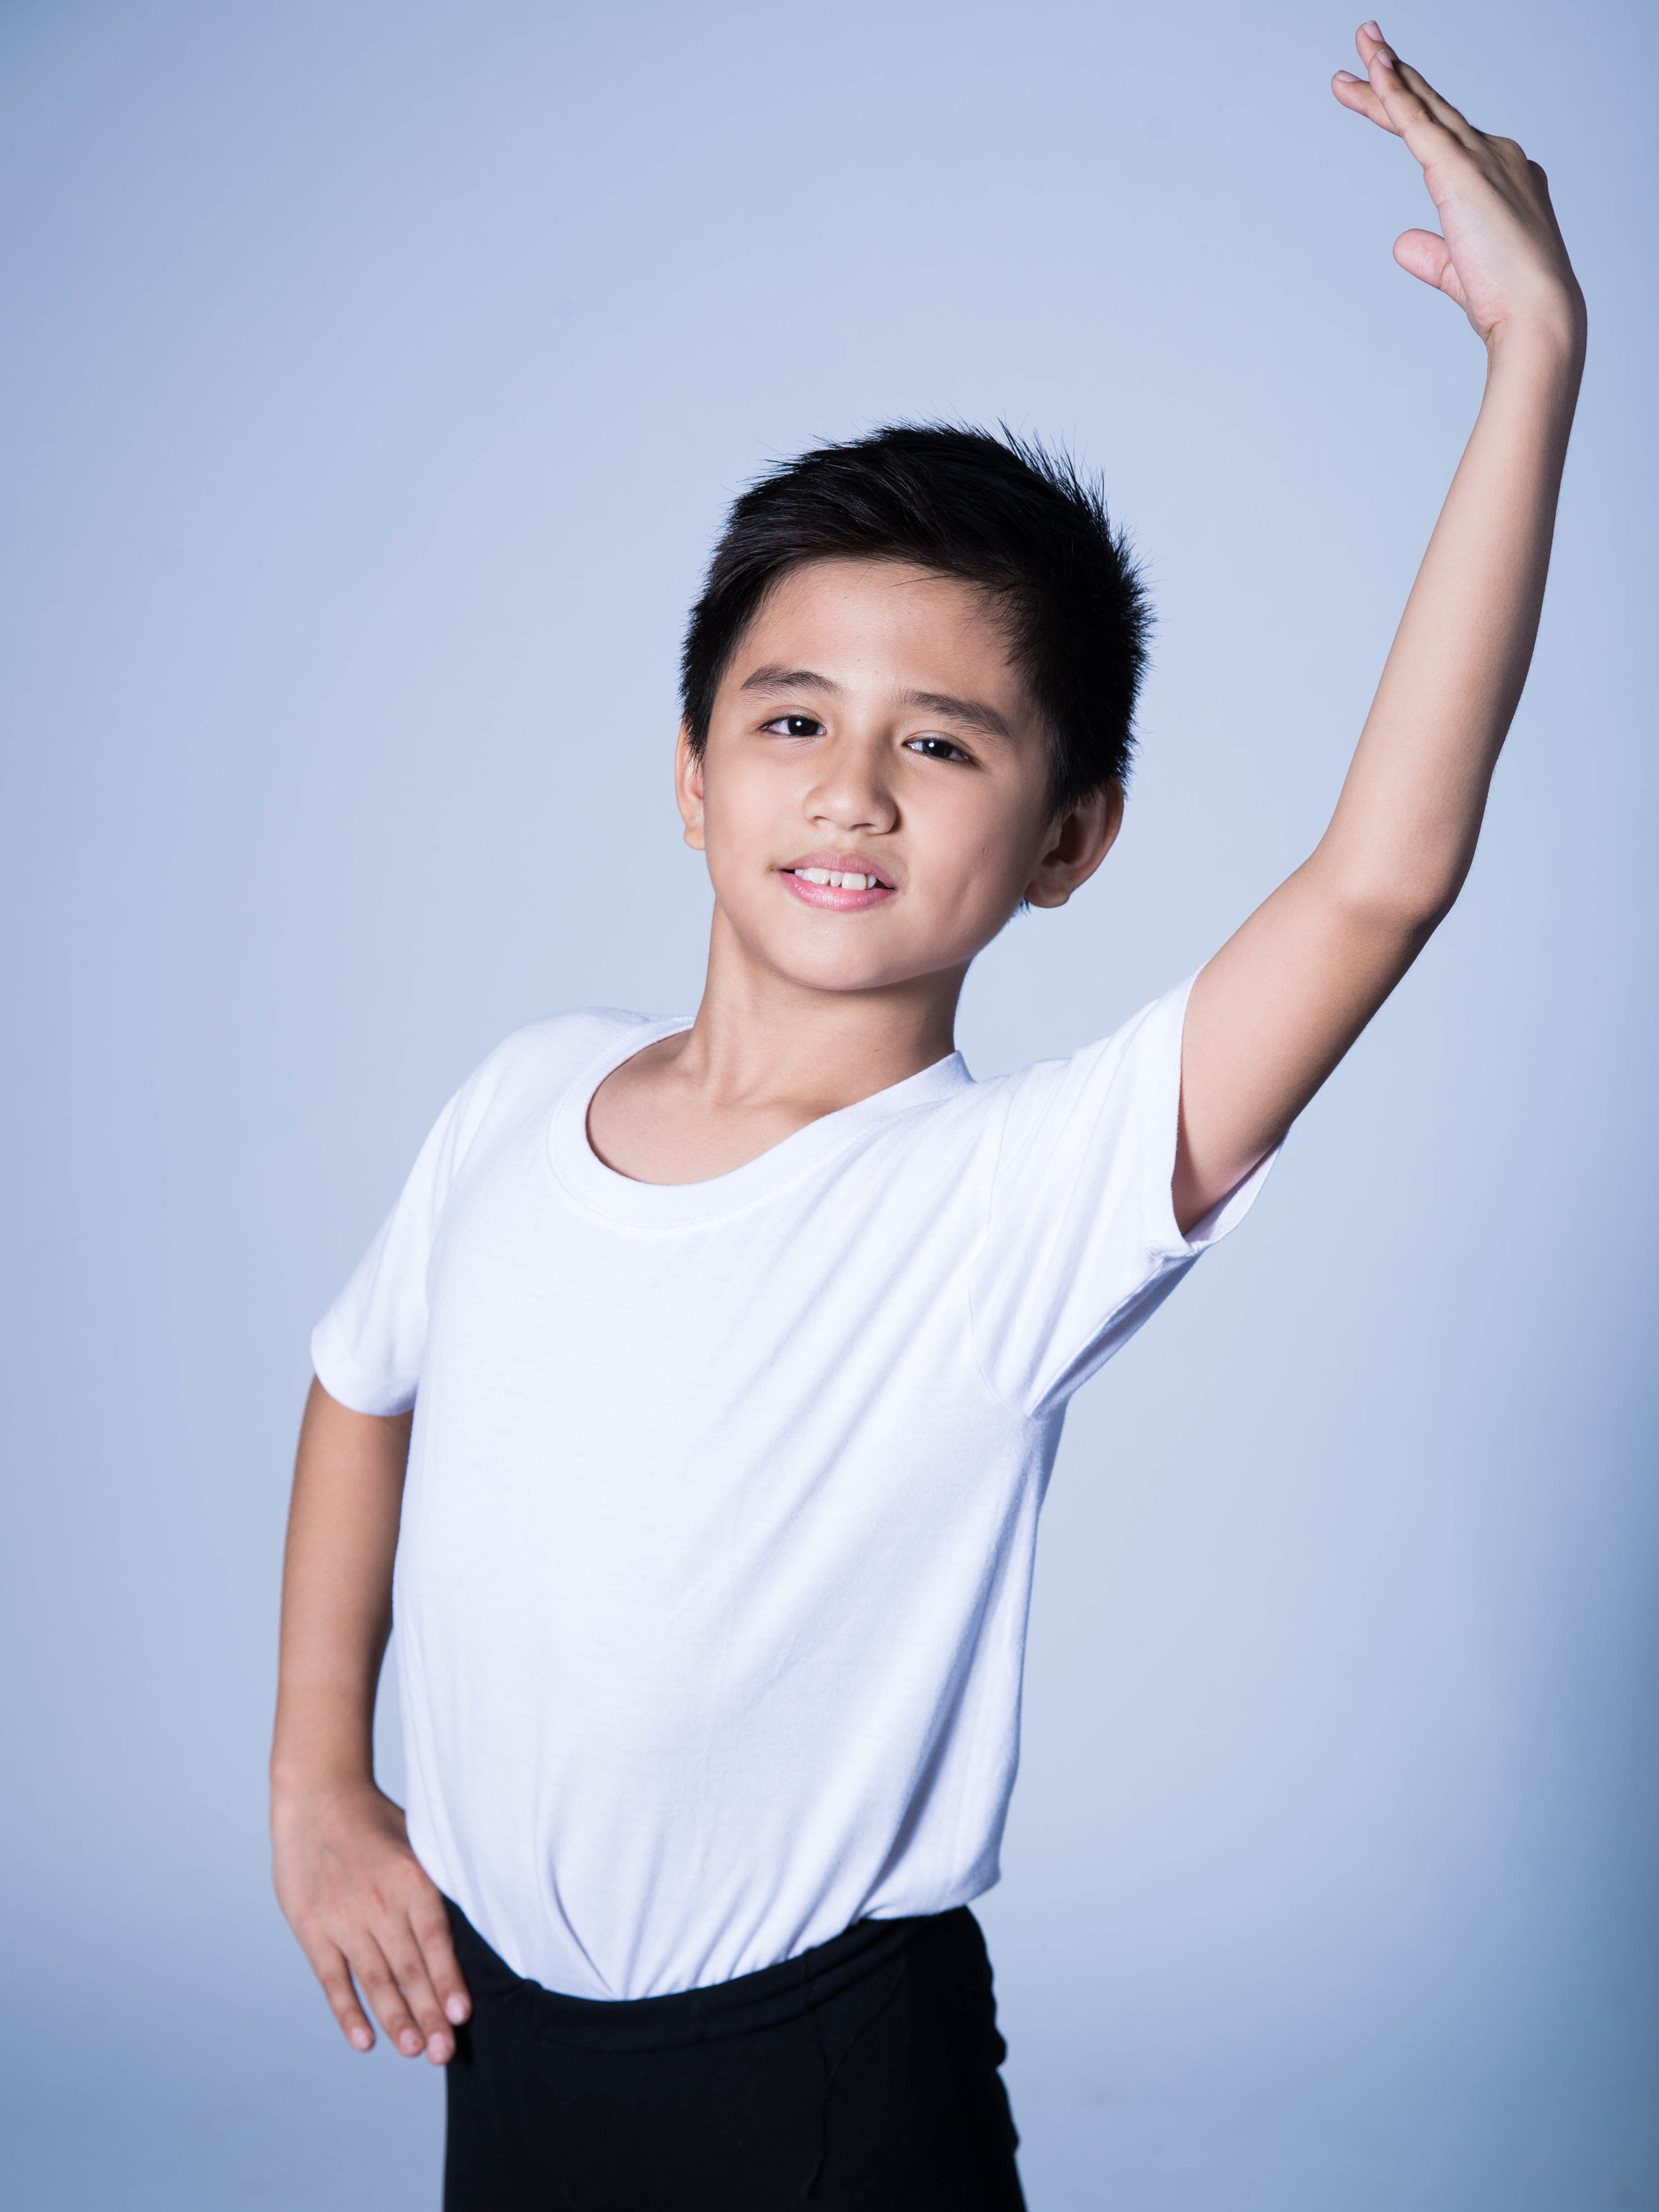 Juan Angelo De Leon, Pre-Competitive B. Photo by MarBi Photography